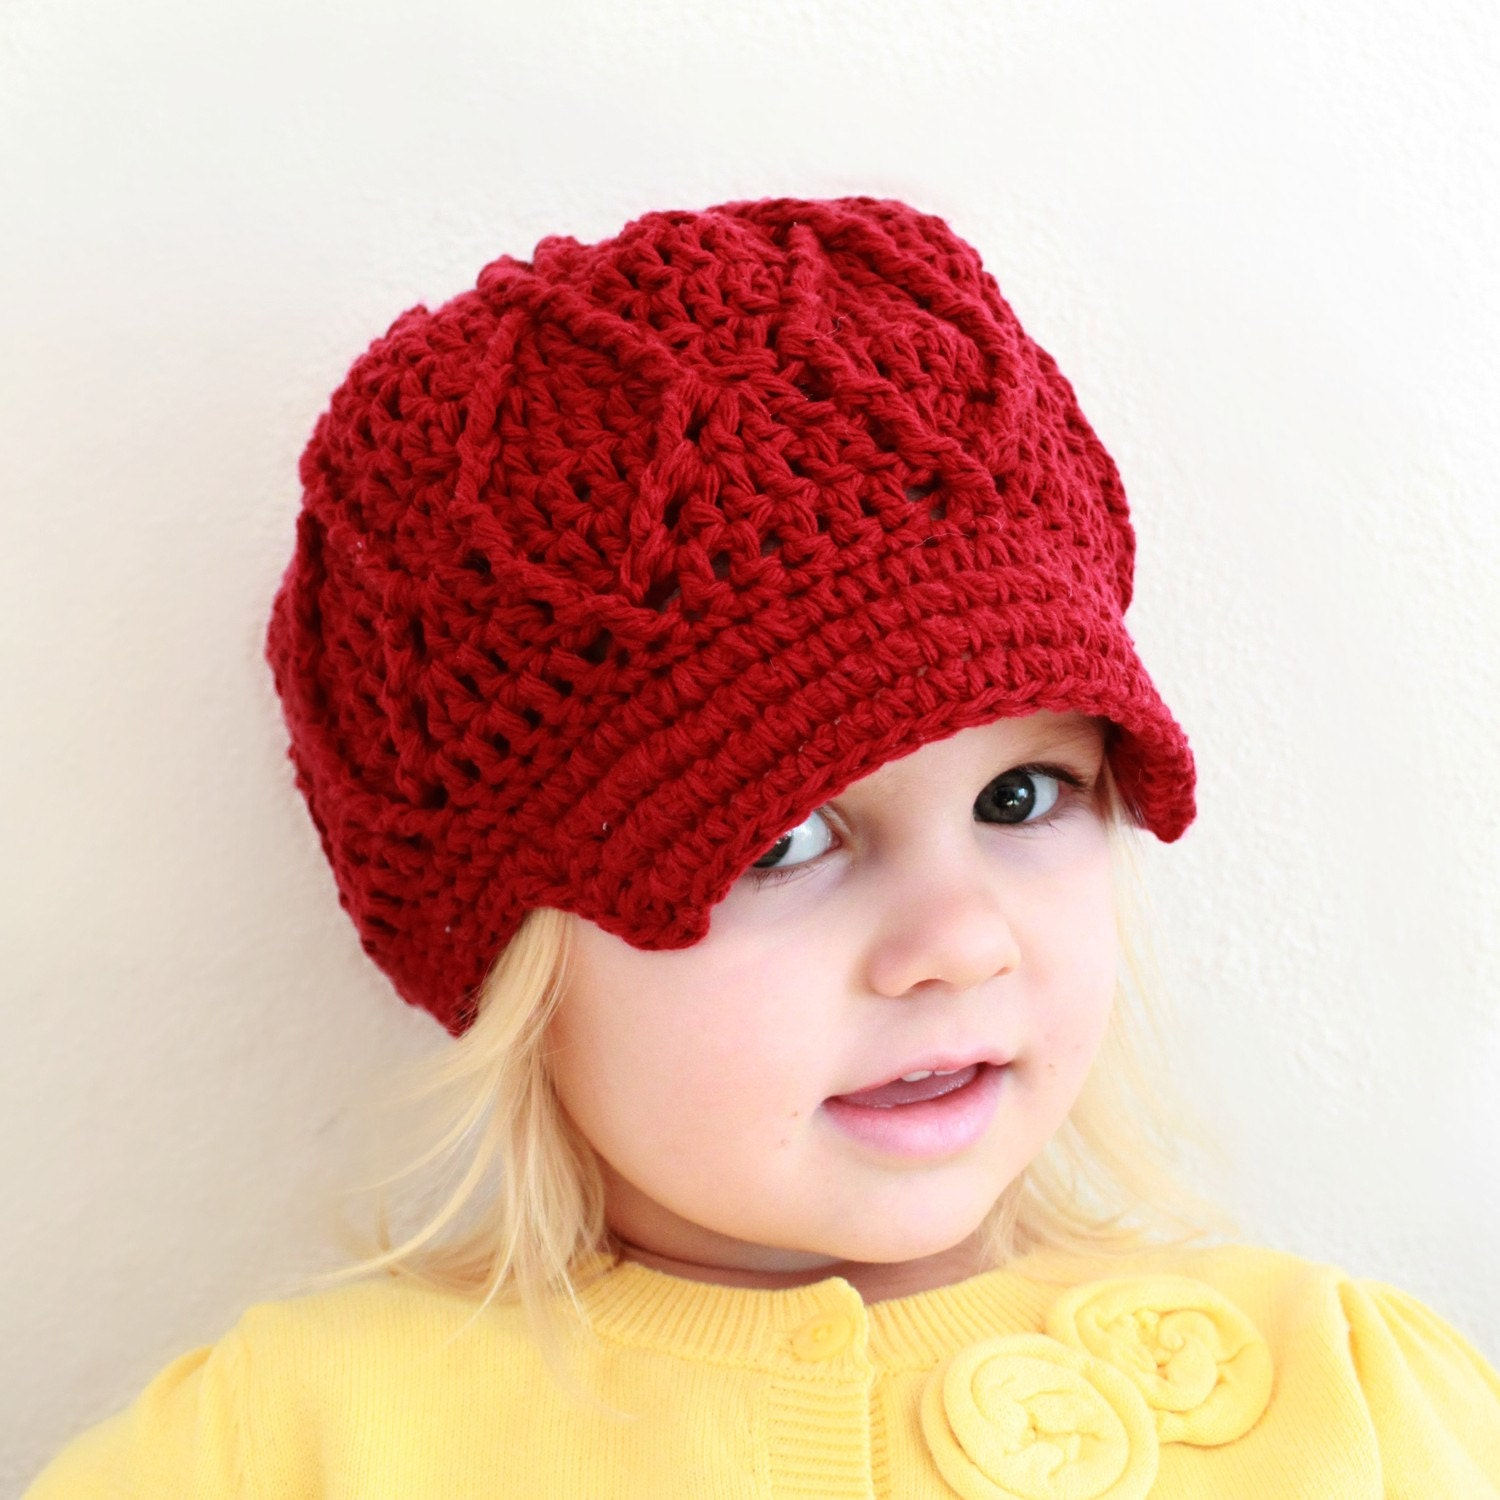 Instant Download Crochet Pattern Maggie Newsboy Hat